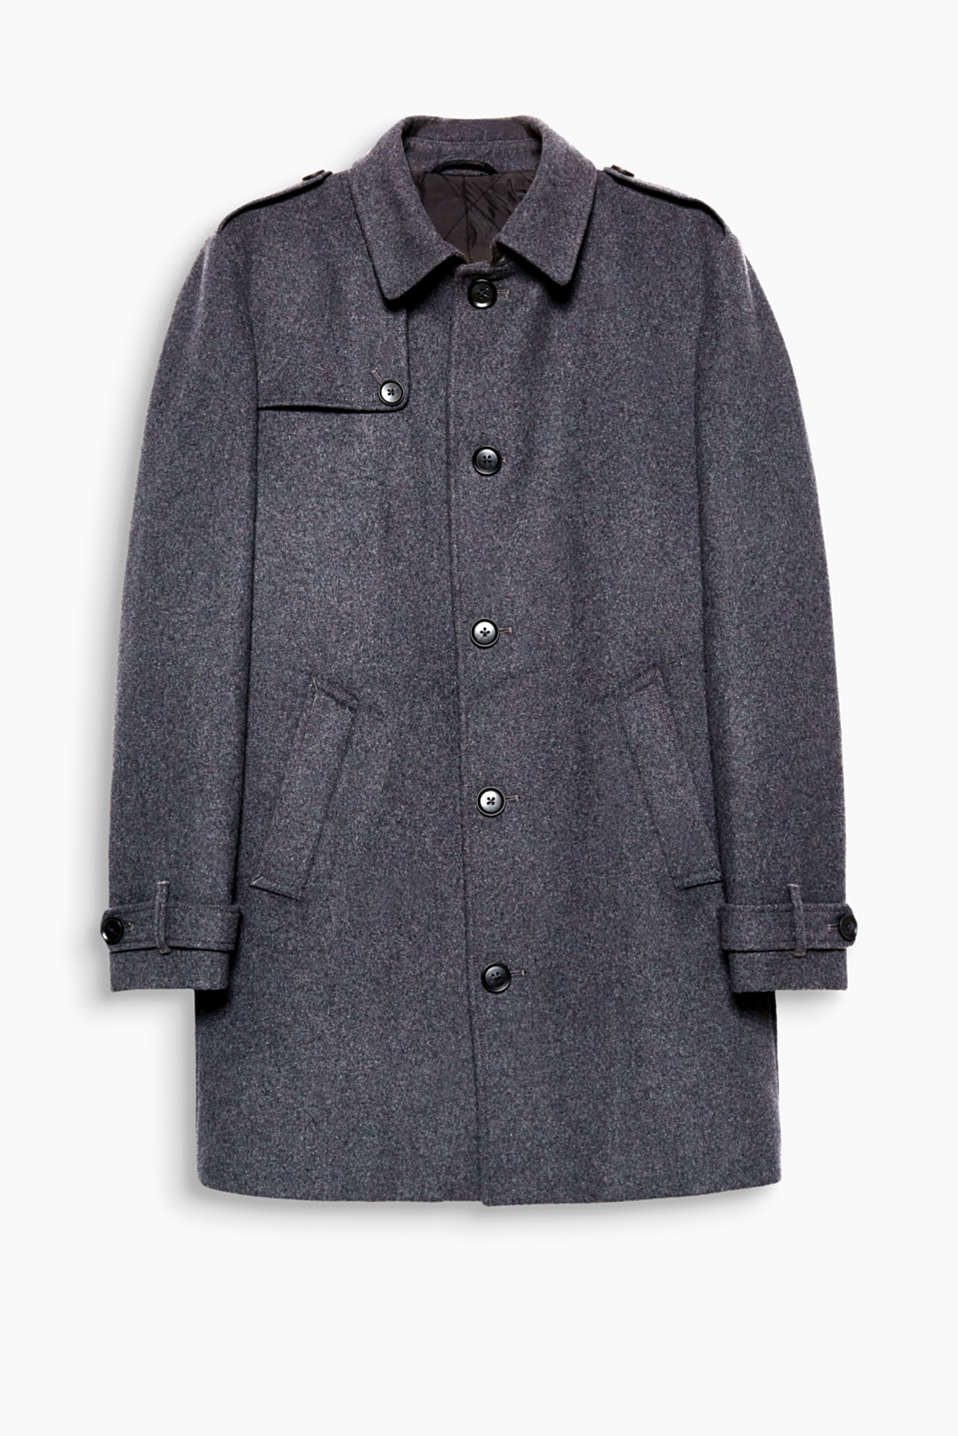 A modern and timeless look for the cold season! This coat features military influences